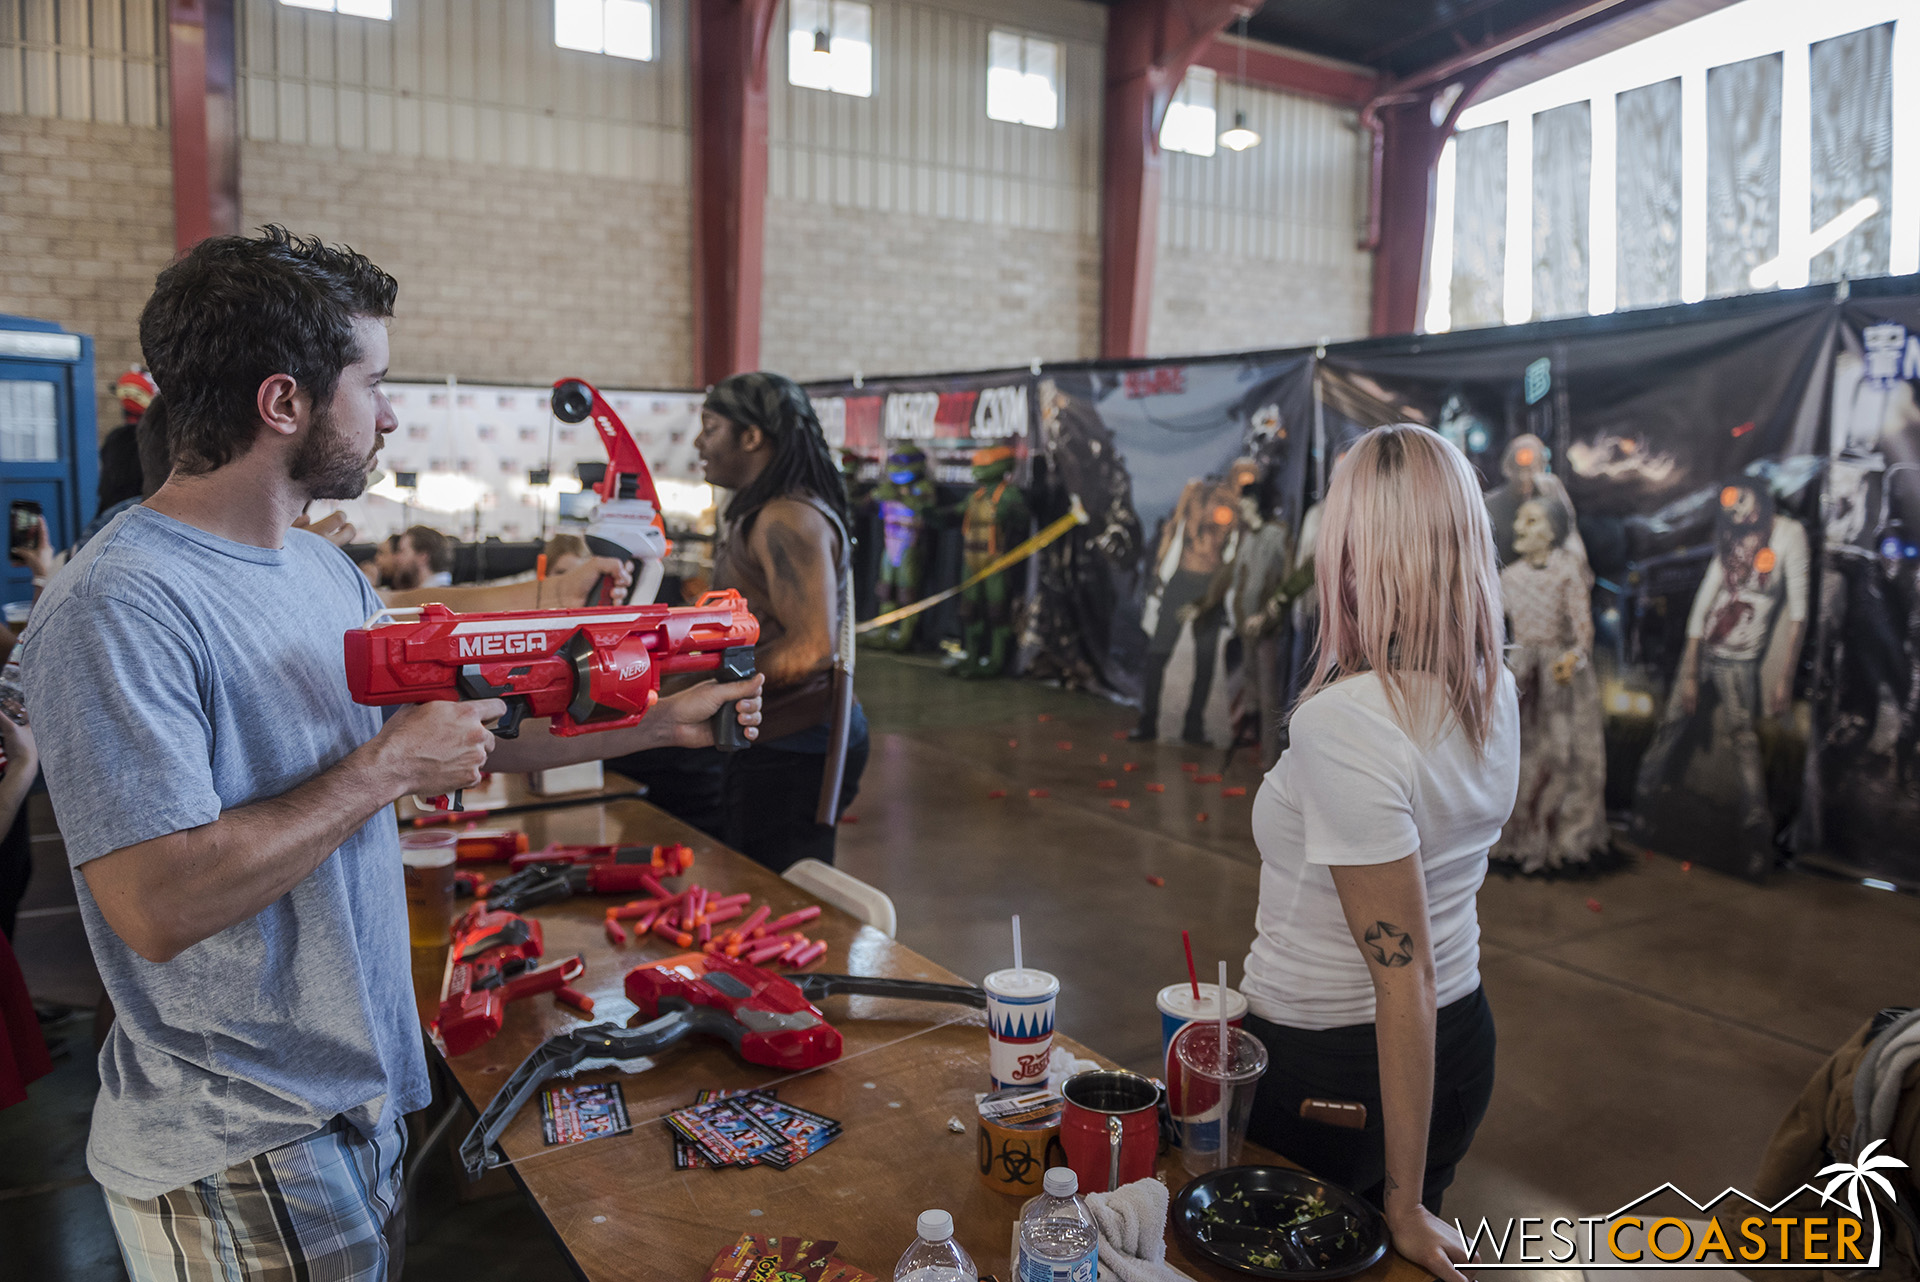 The OC Promenade—home to the culinary arts exhibits during the OC Fair—played host to Machinima and NerdBot sponsored video game, joust, and zombie Nerf shooting attractions.